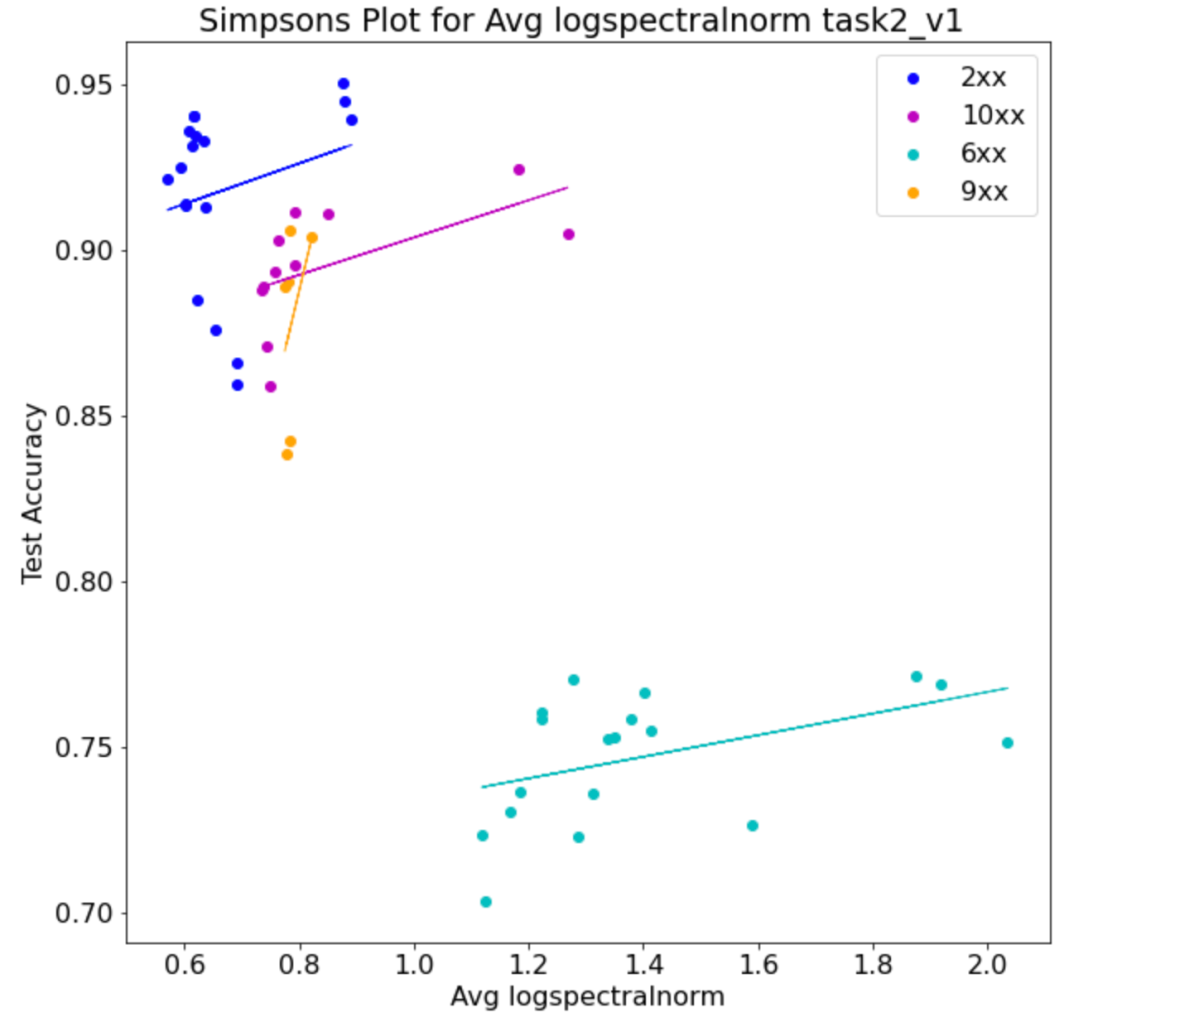 Simpson's Paradox and Deep Learning Metrics with Weightwatcher